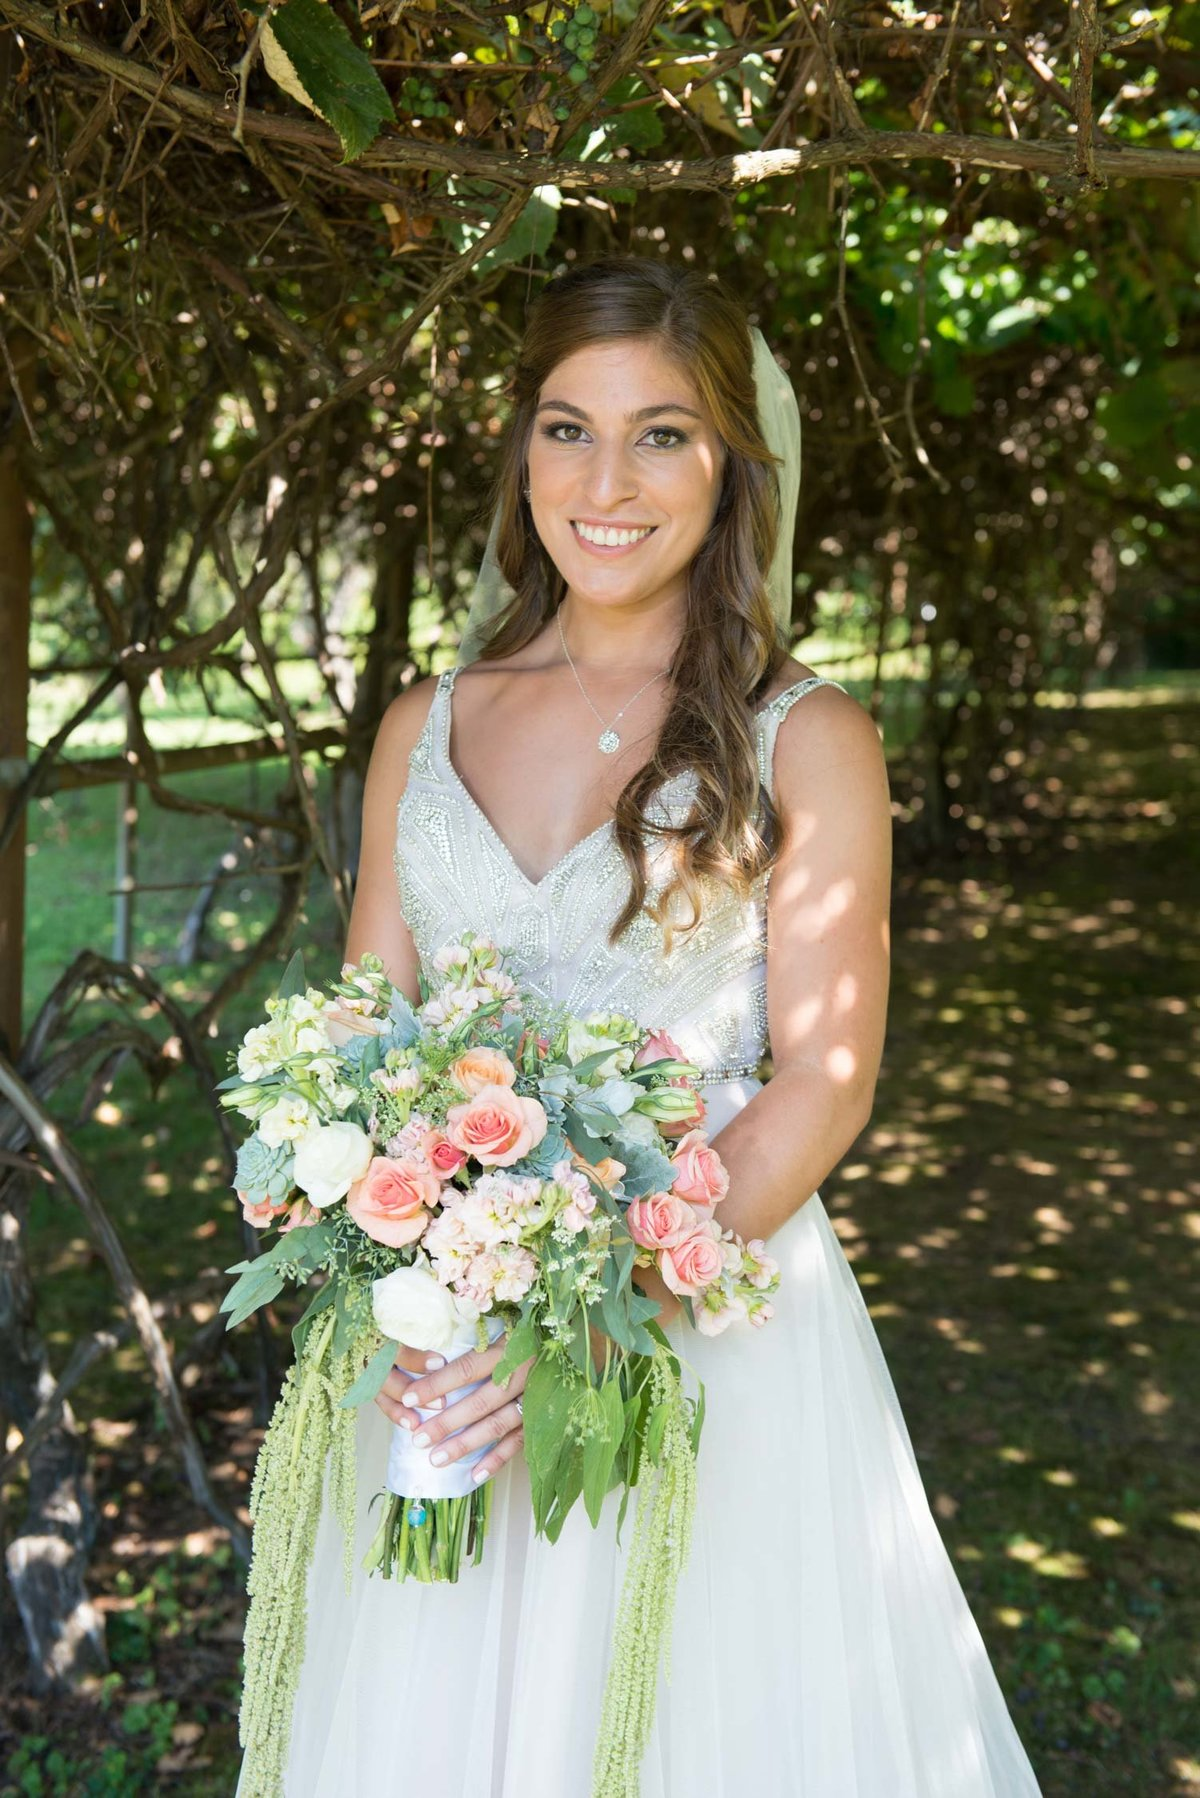 Bride smiling holding bouquet outside at Flowerfield